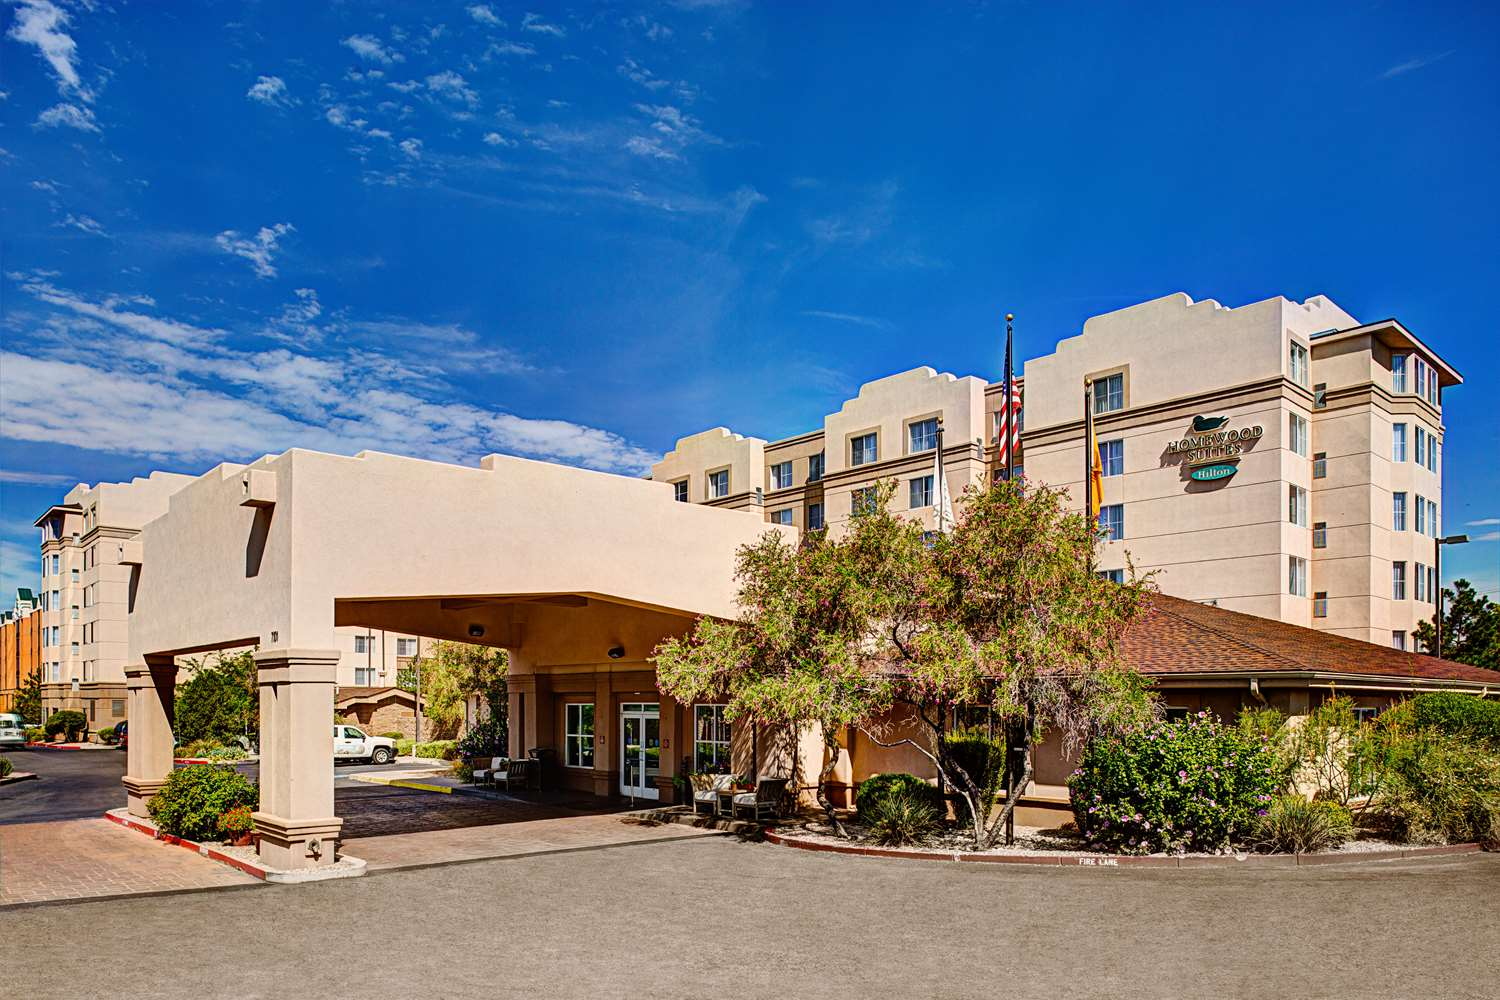 Homewood Suites by Hilton Uptown Albuquerque